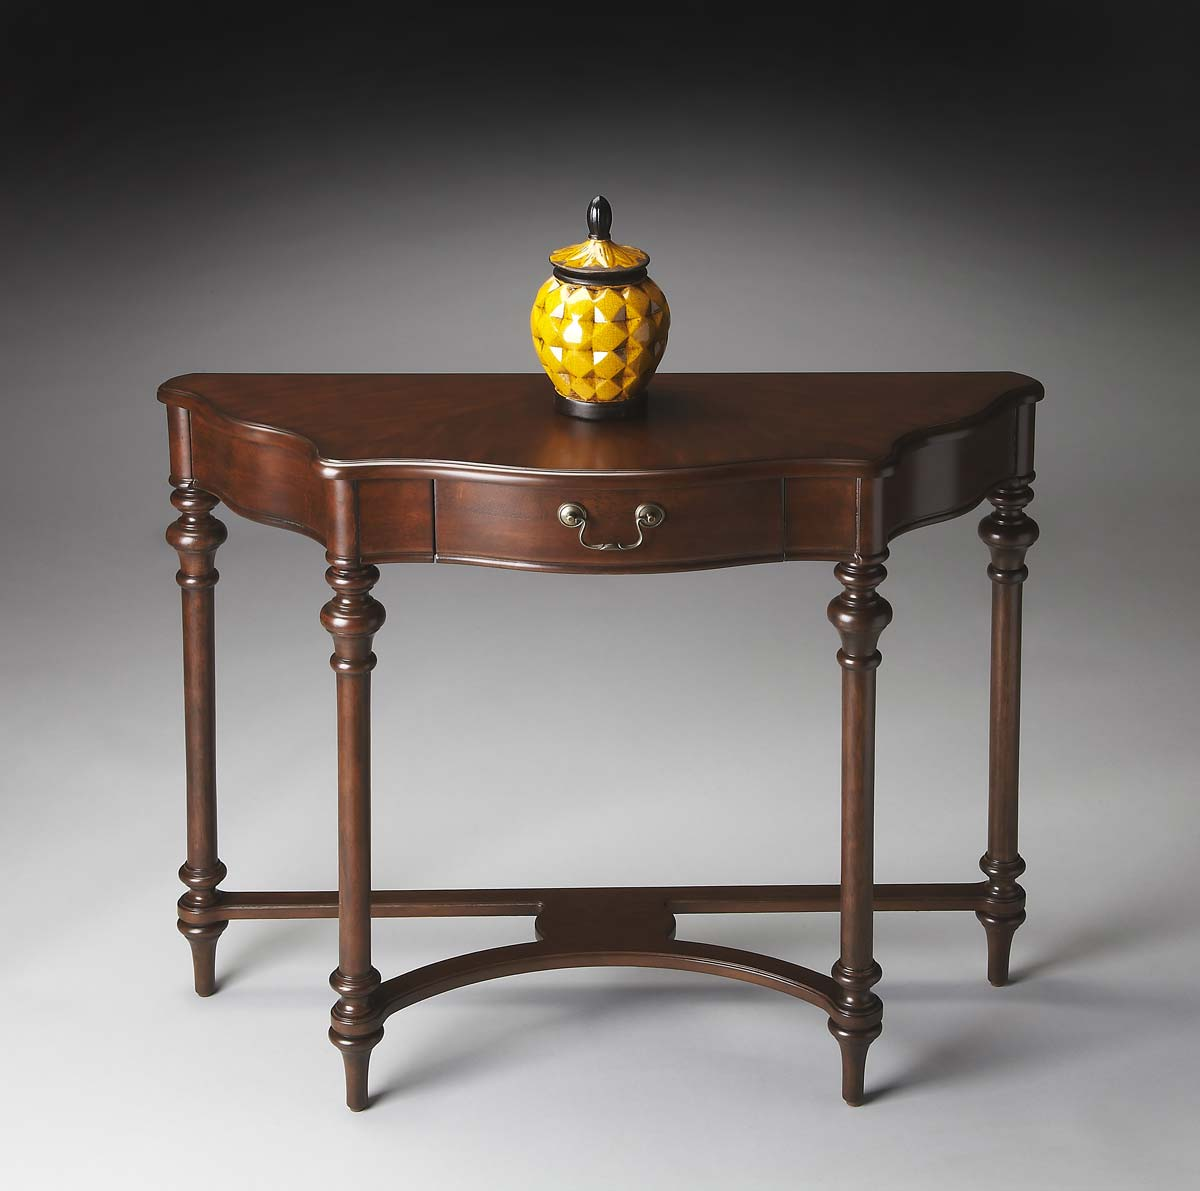 Butler 1263024 Console Table - Plantation Cherry